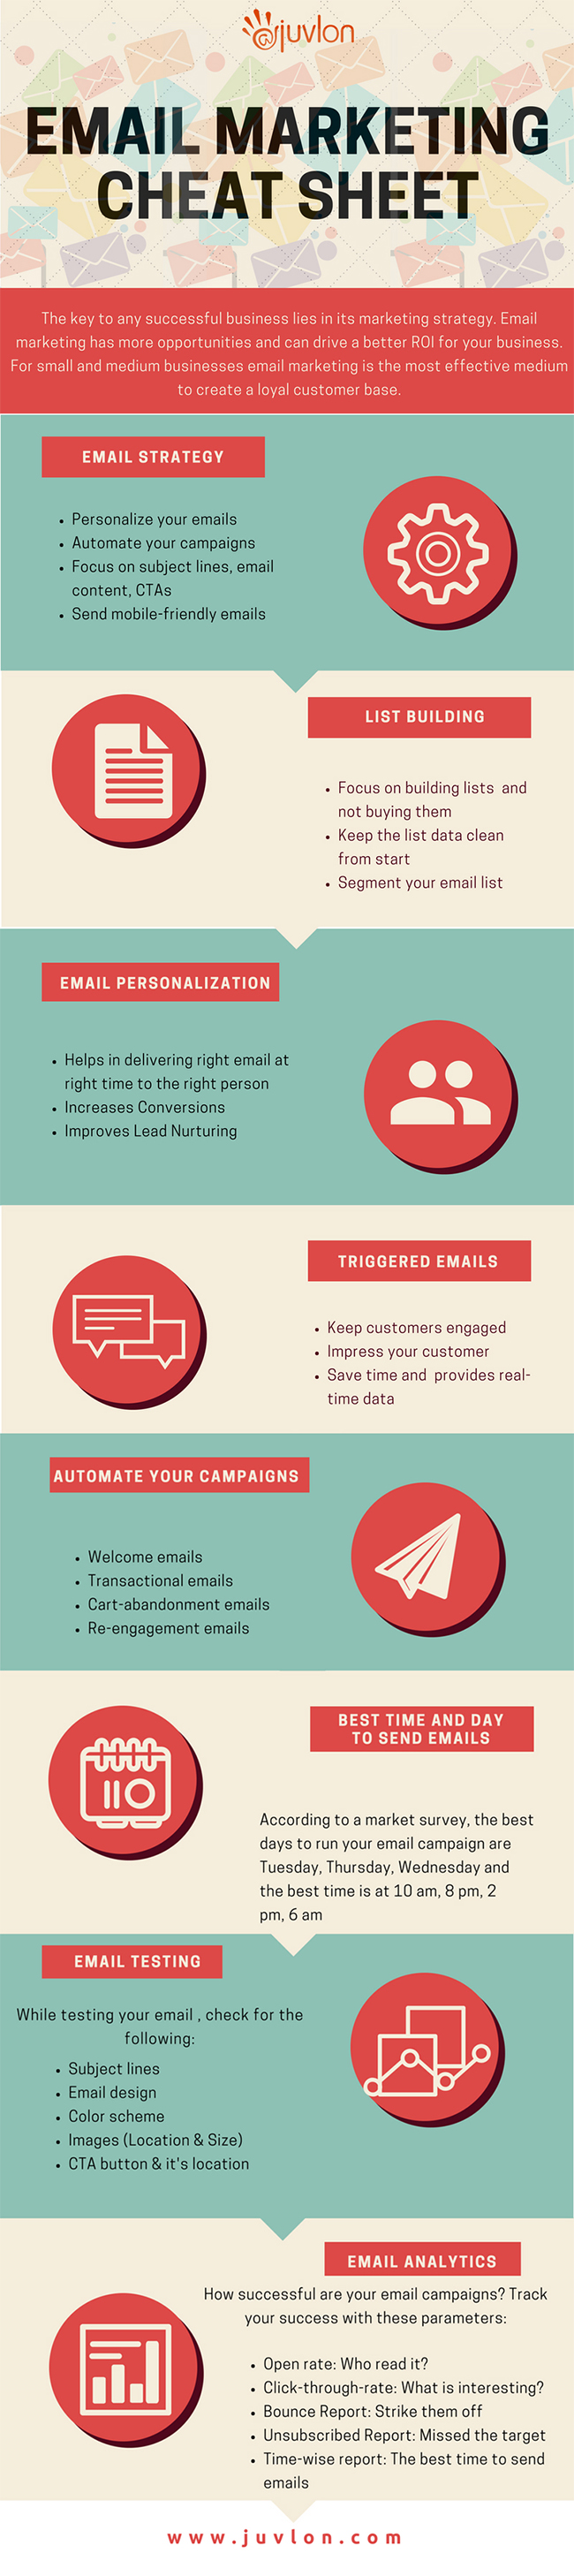 Email marketing cheat sheet infographic